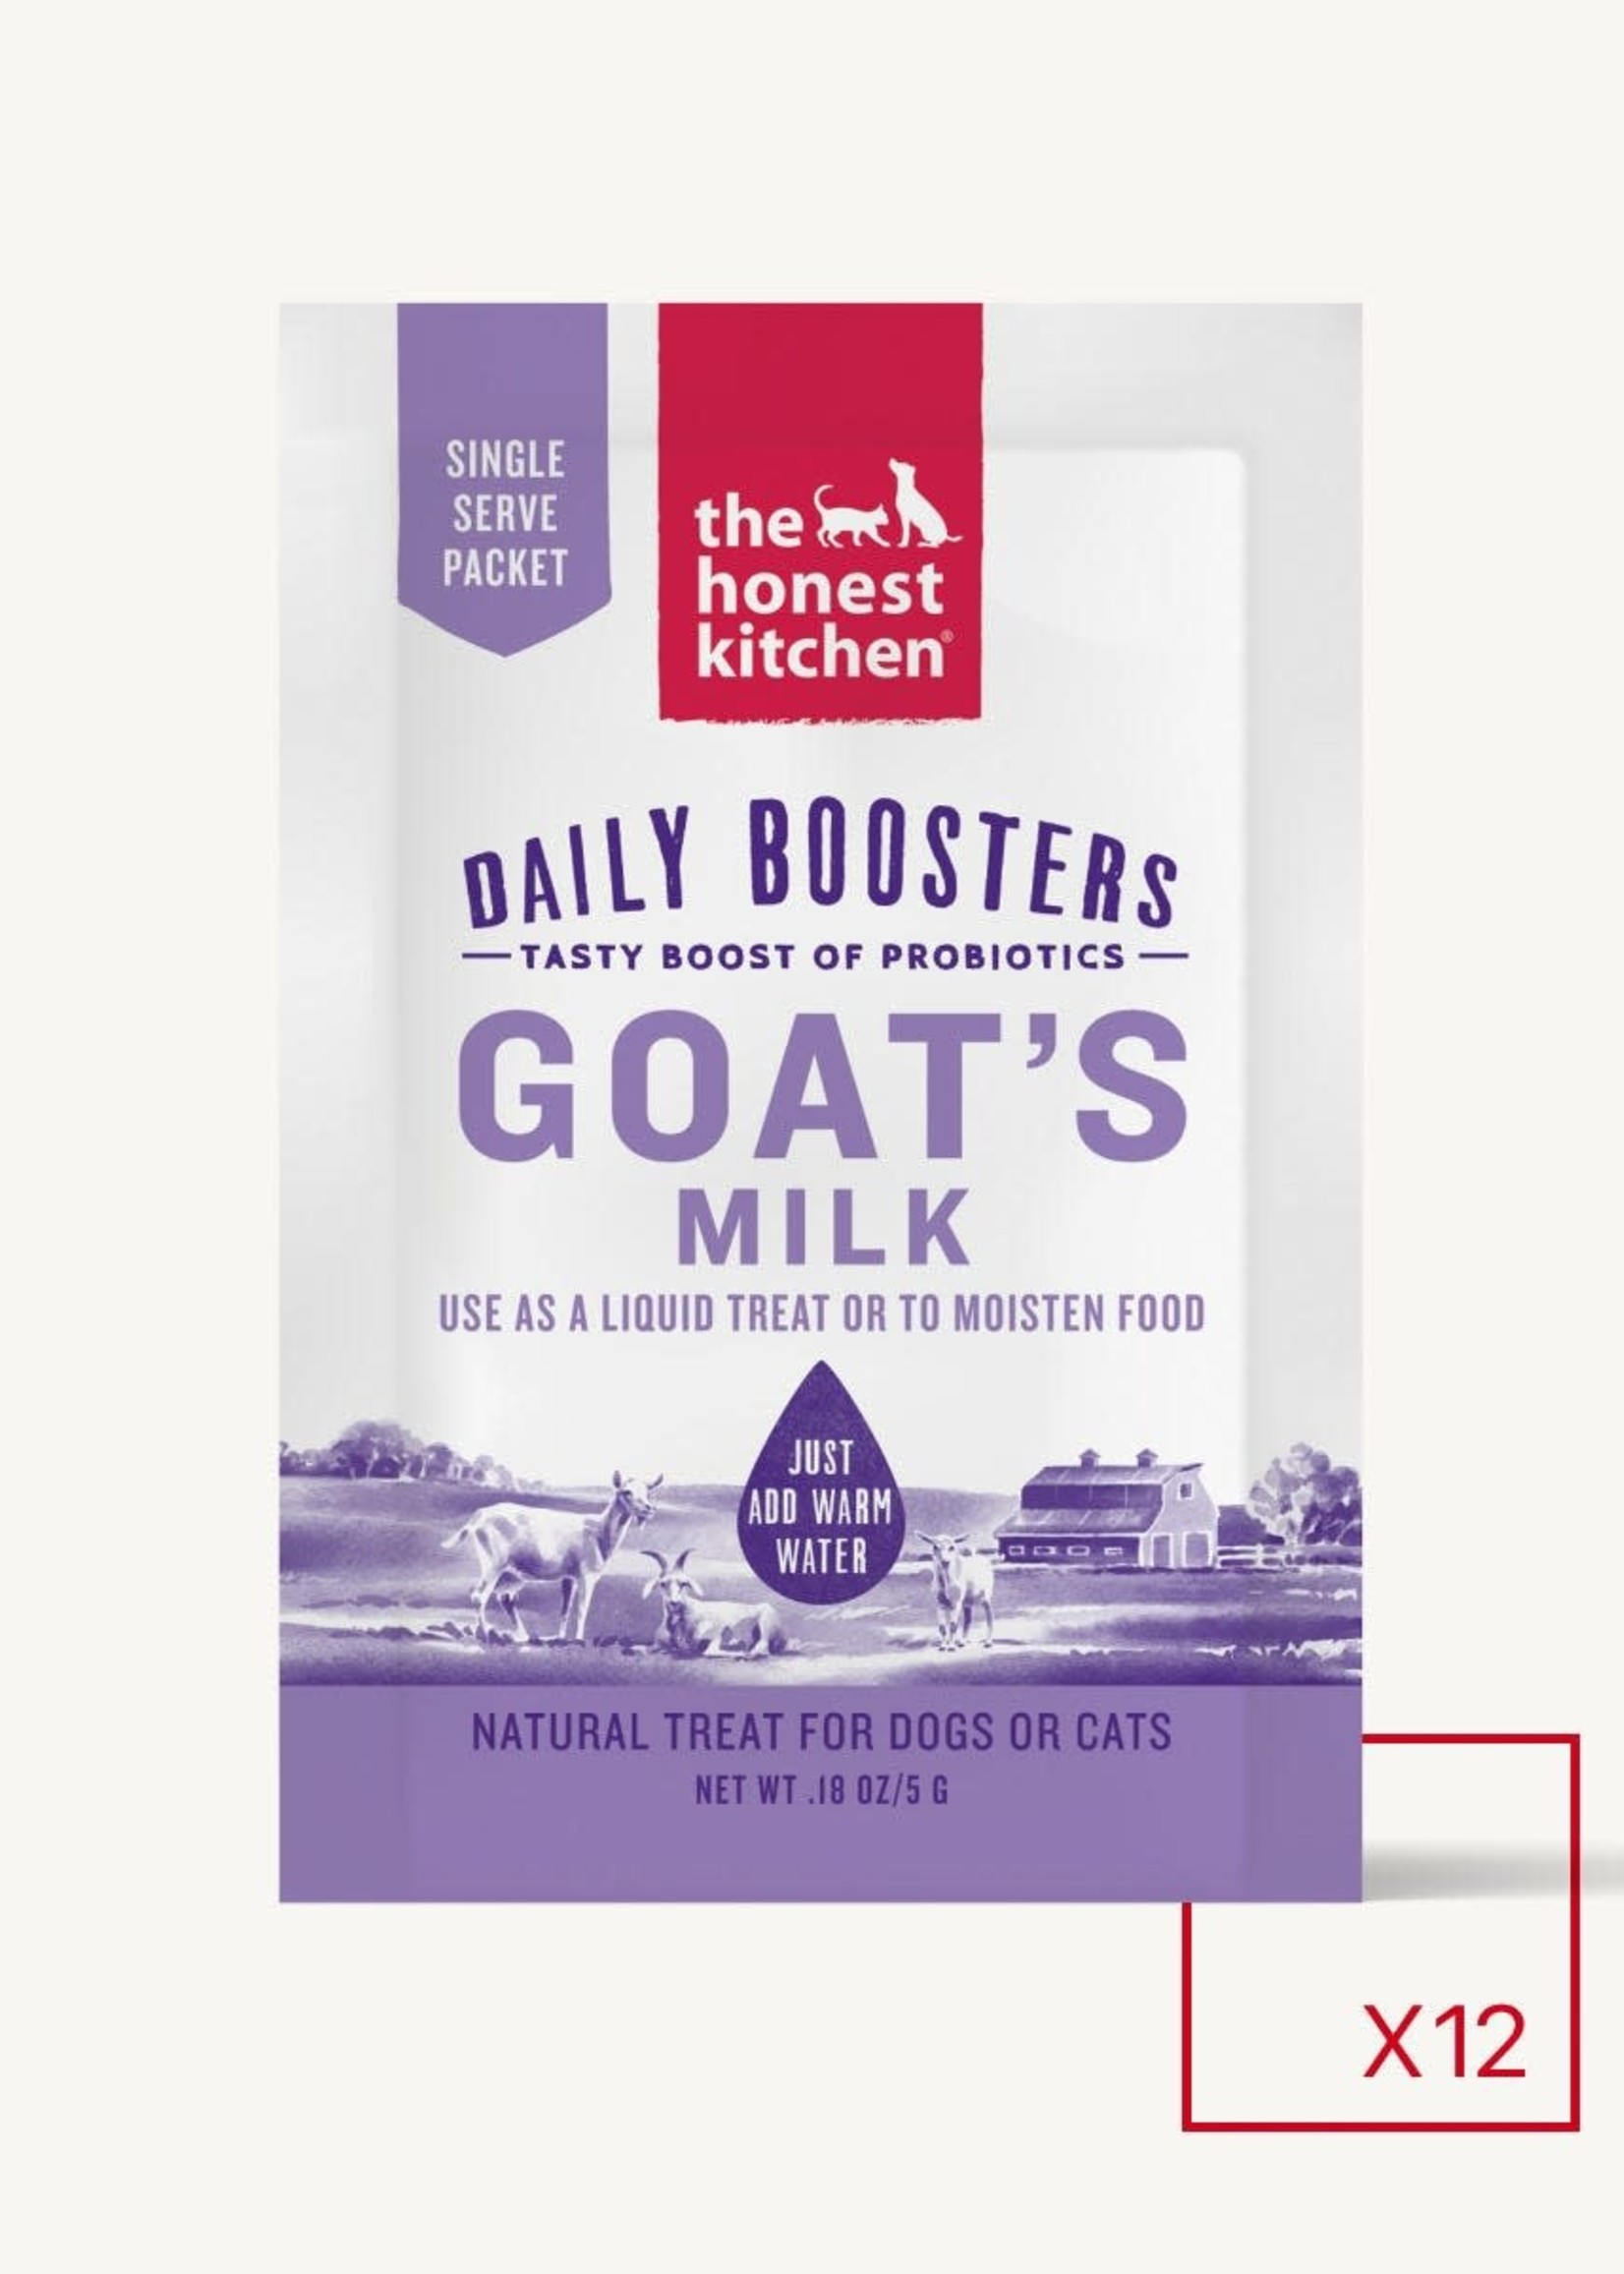 The Honest Kitchen The Honest Kitchen Daily Boosters Goat's Milk Single Serve Pack 5g